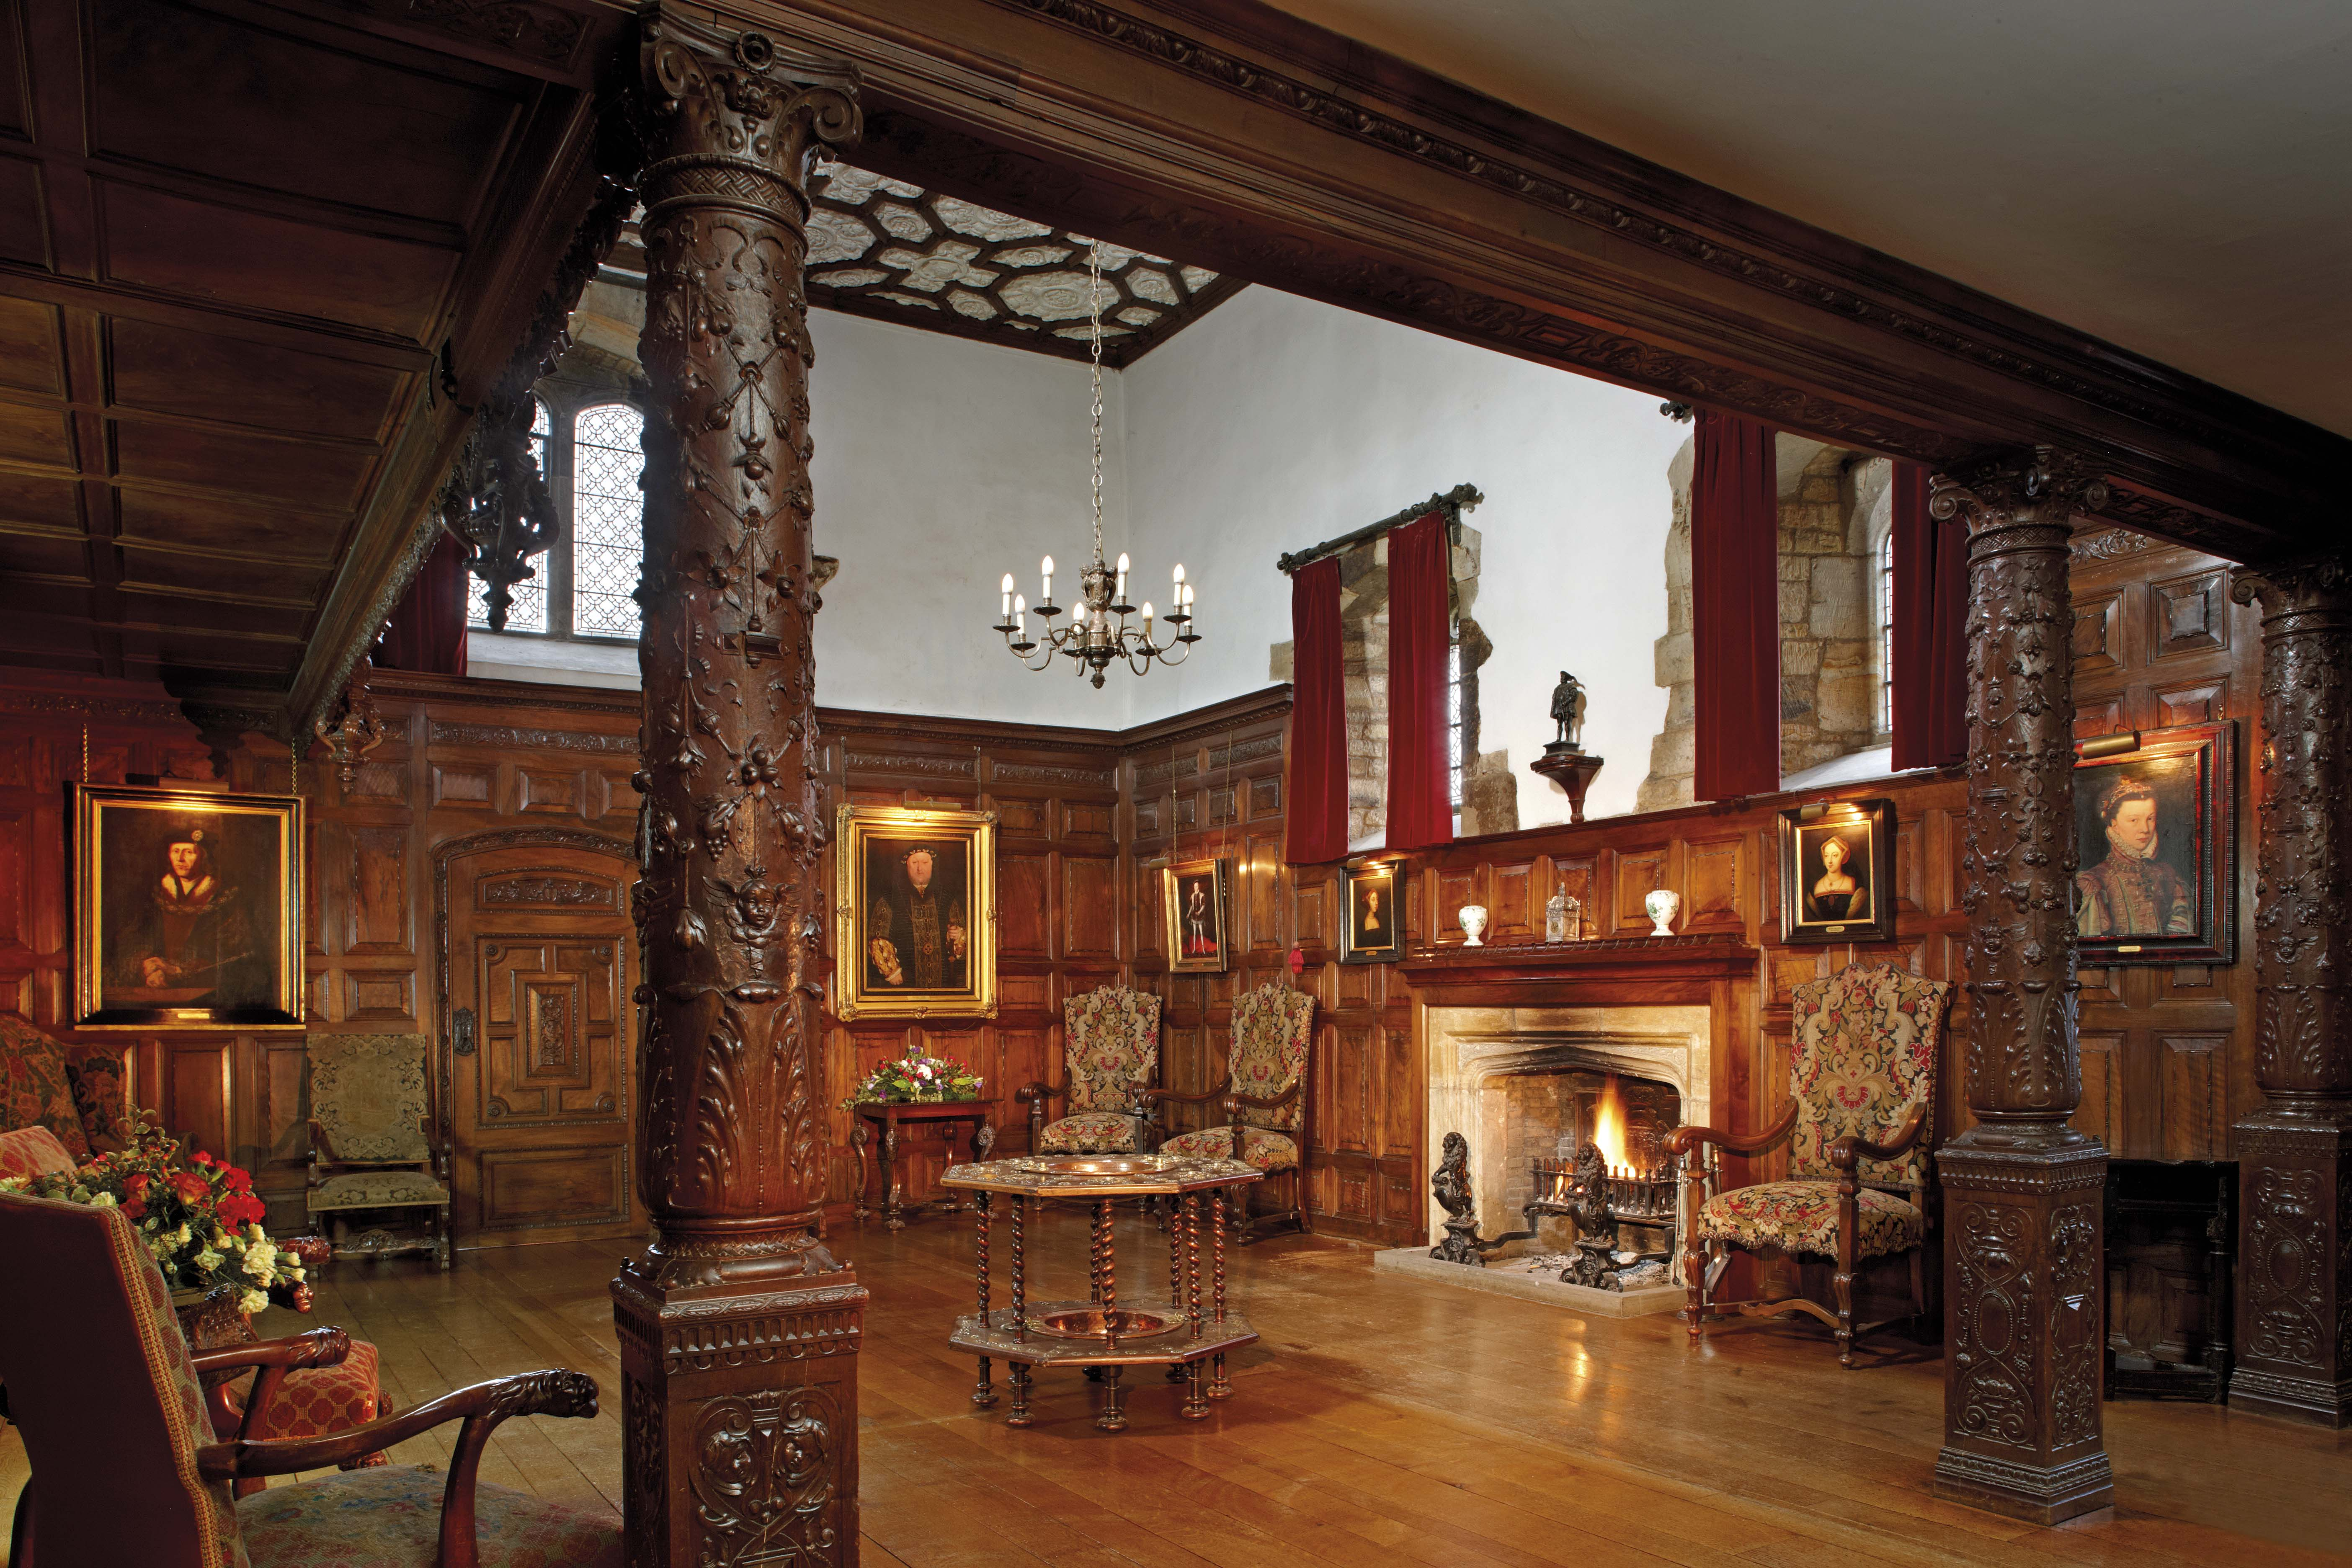 The Inner Hall at Hever Castle